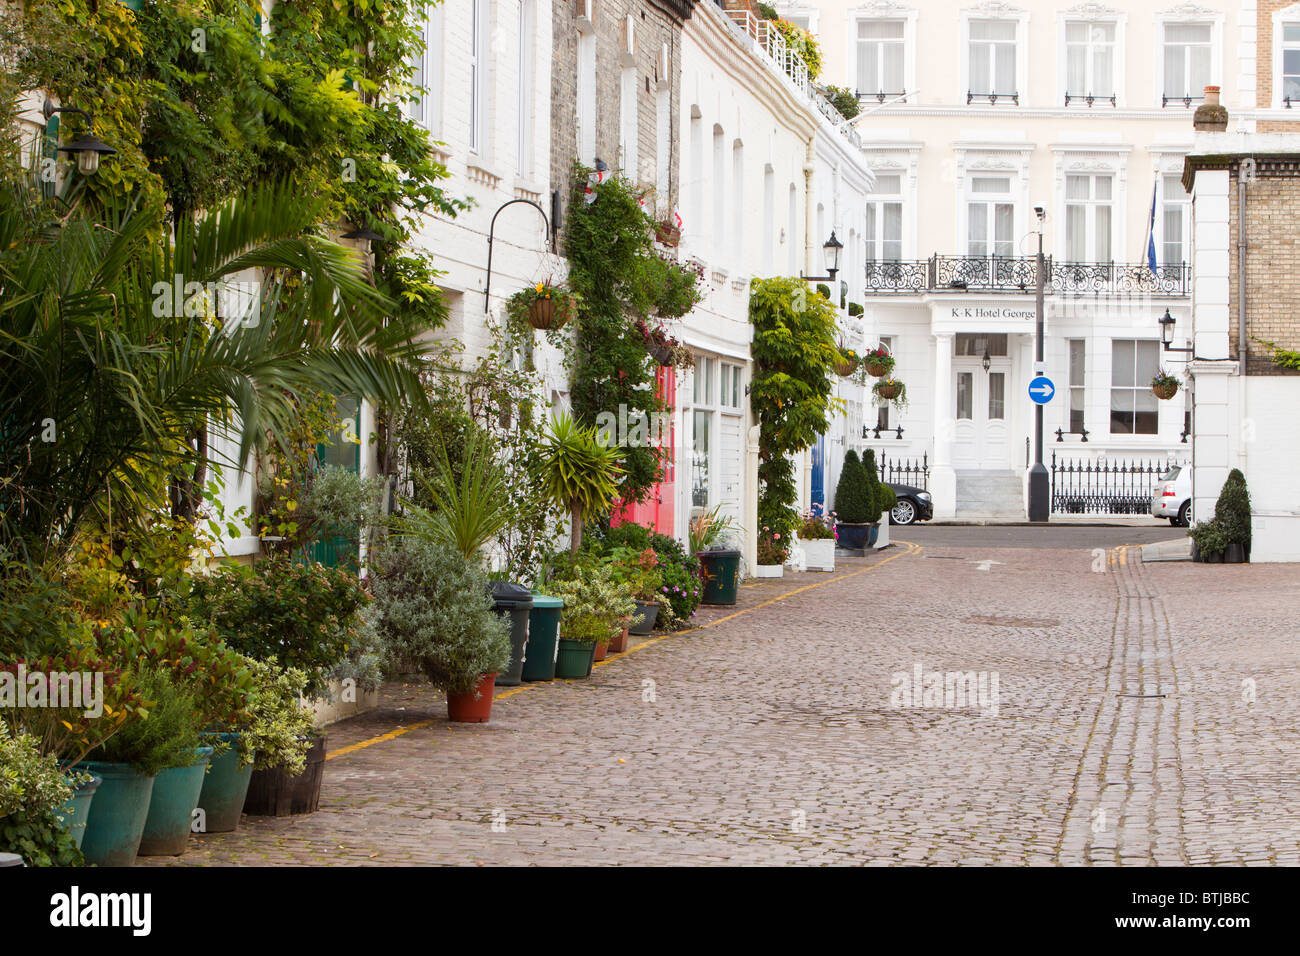 Spear Mews in the Borough of Kensington and chelsea at Earls court, London, UK. - Stock Image